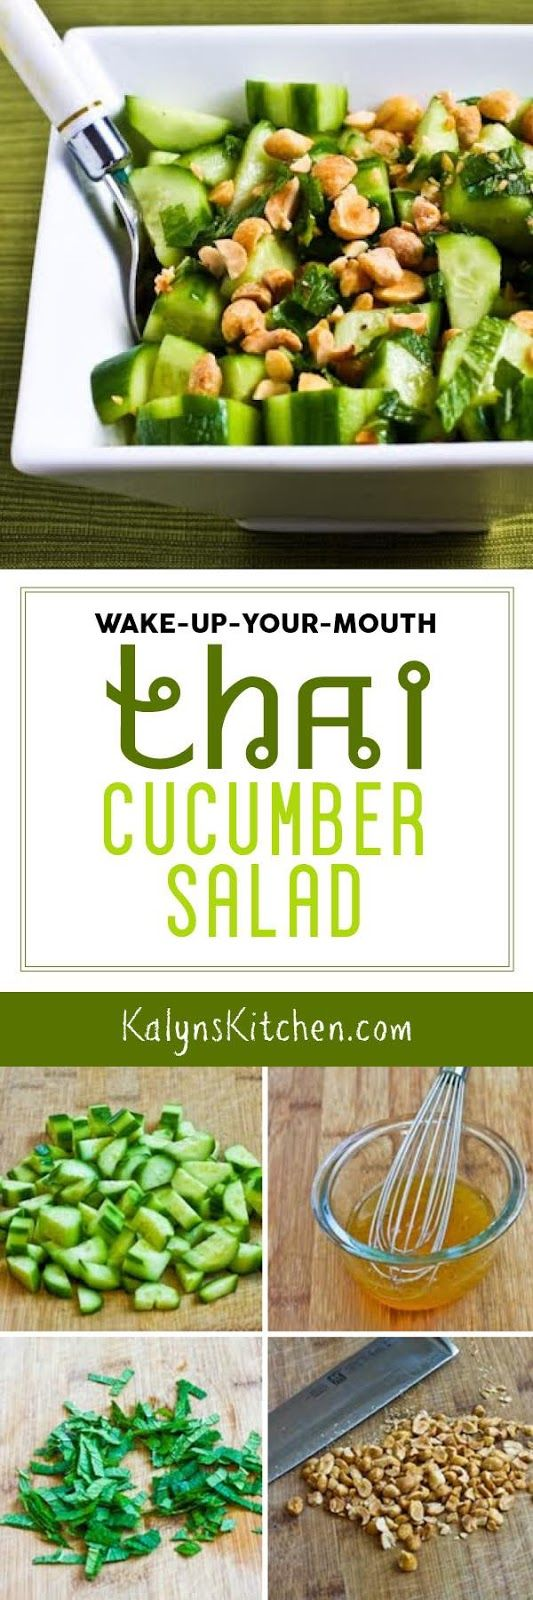 Wake-Up-Your-Mouth Thai Cucumber Salad is a fabulous side dish for any Asian meal and with approved sweeteners the salad is low-carb, Keto, low-glycemic, gluten-free, and South Beach Diet friendly. This is a great salad any time of year! [found on KalynsKitchen.com] #CucumberSalad #ThaiCucumberSalad #LowCarbThaiSalad